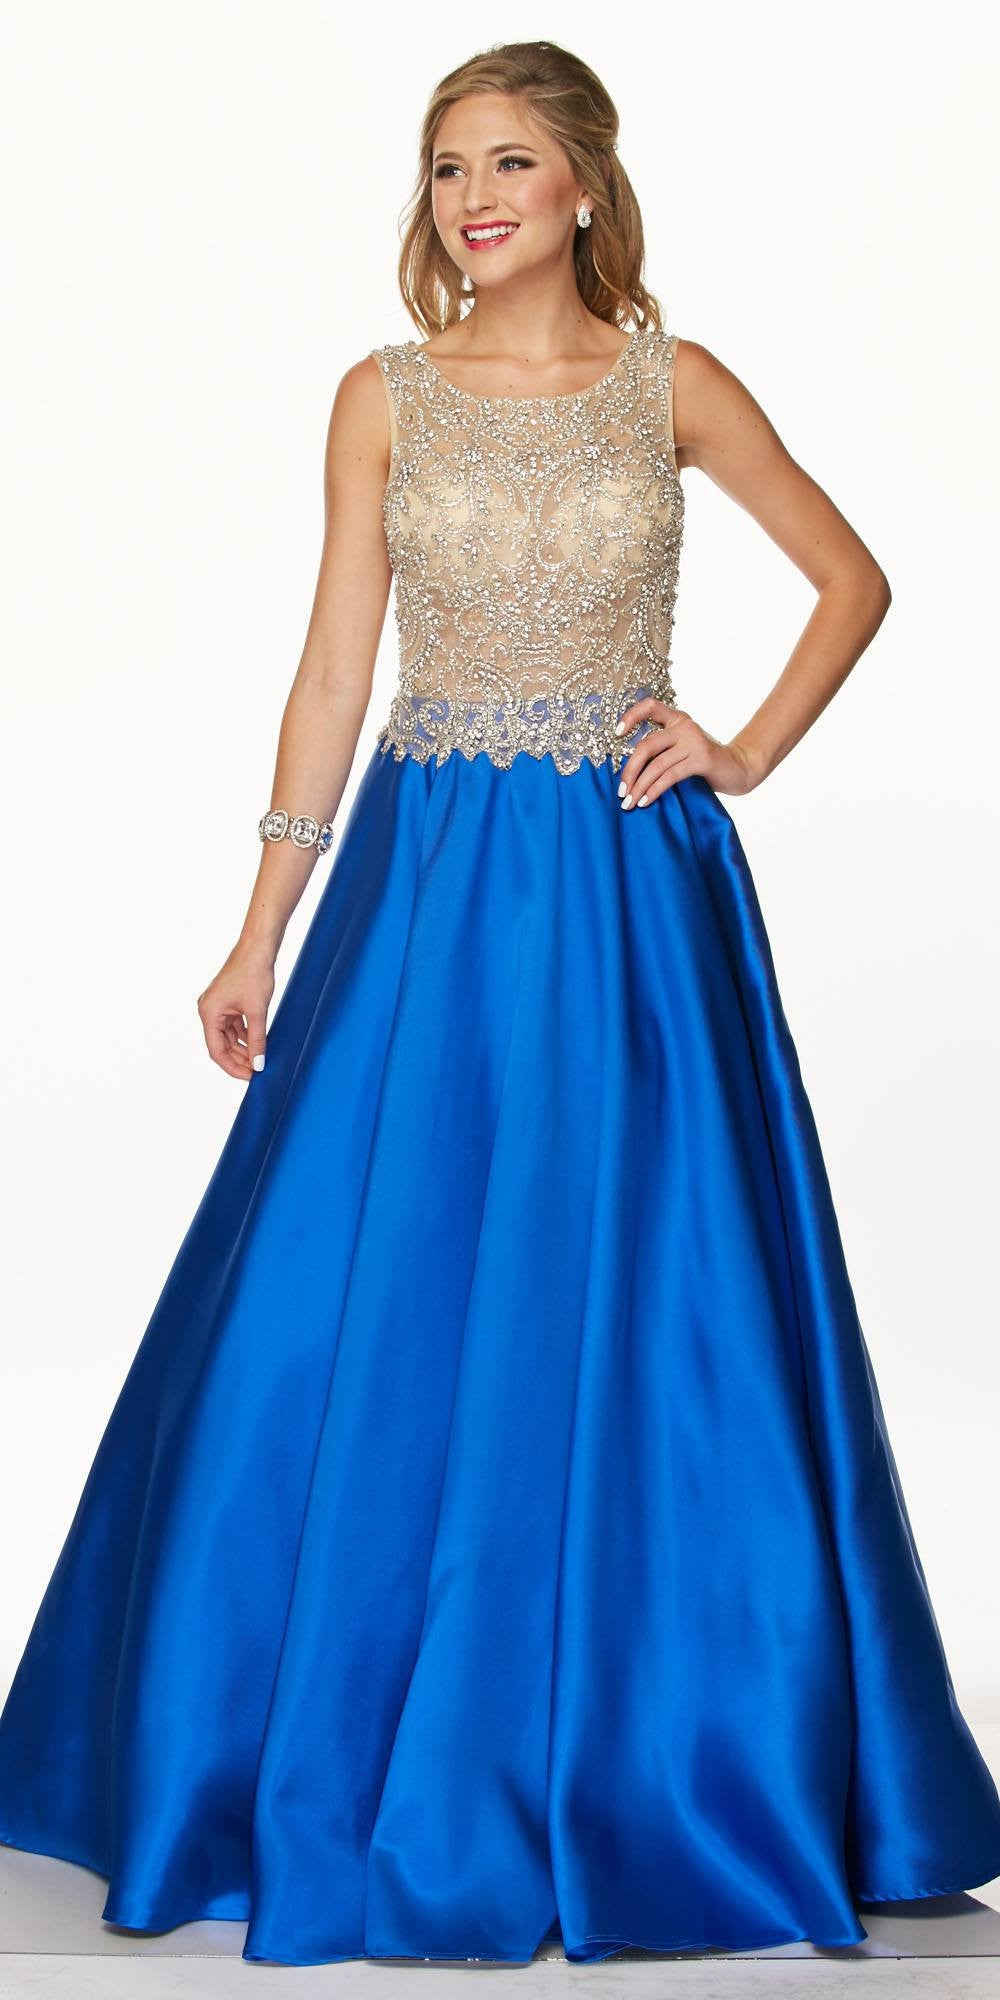 Juliet 651 Bead Applique Illusion Bodice Royal Blue Prom Gown Open ...